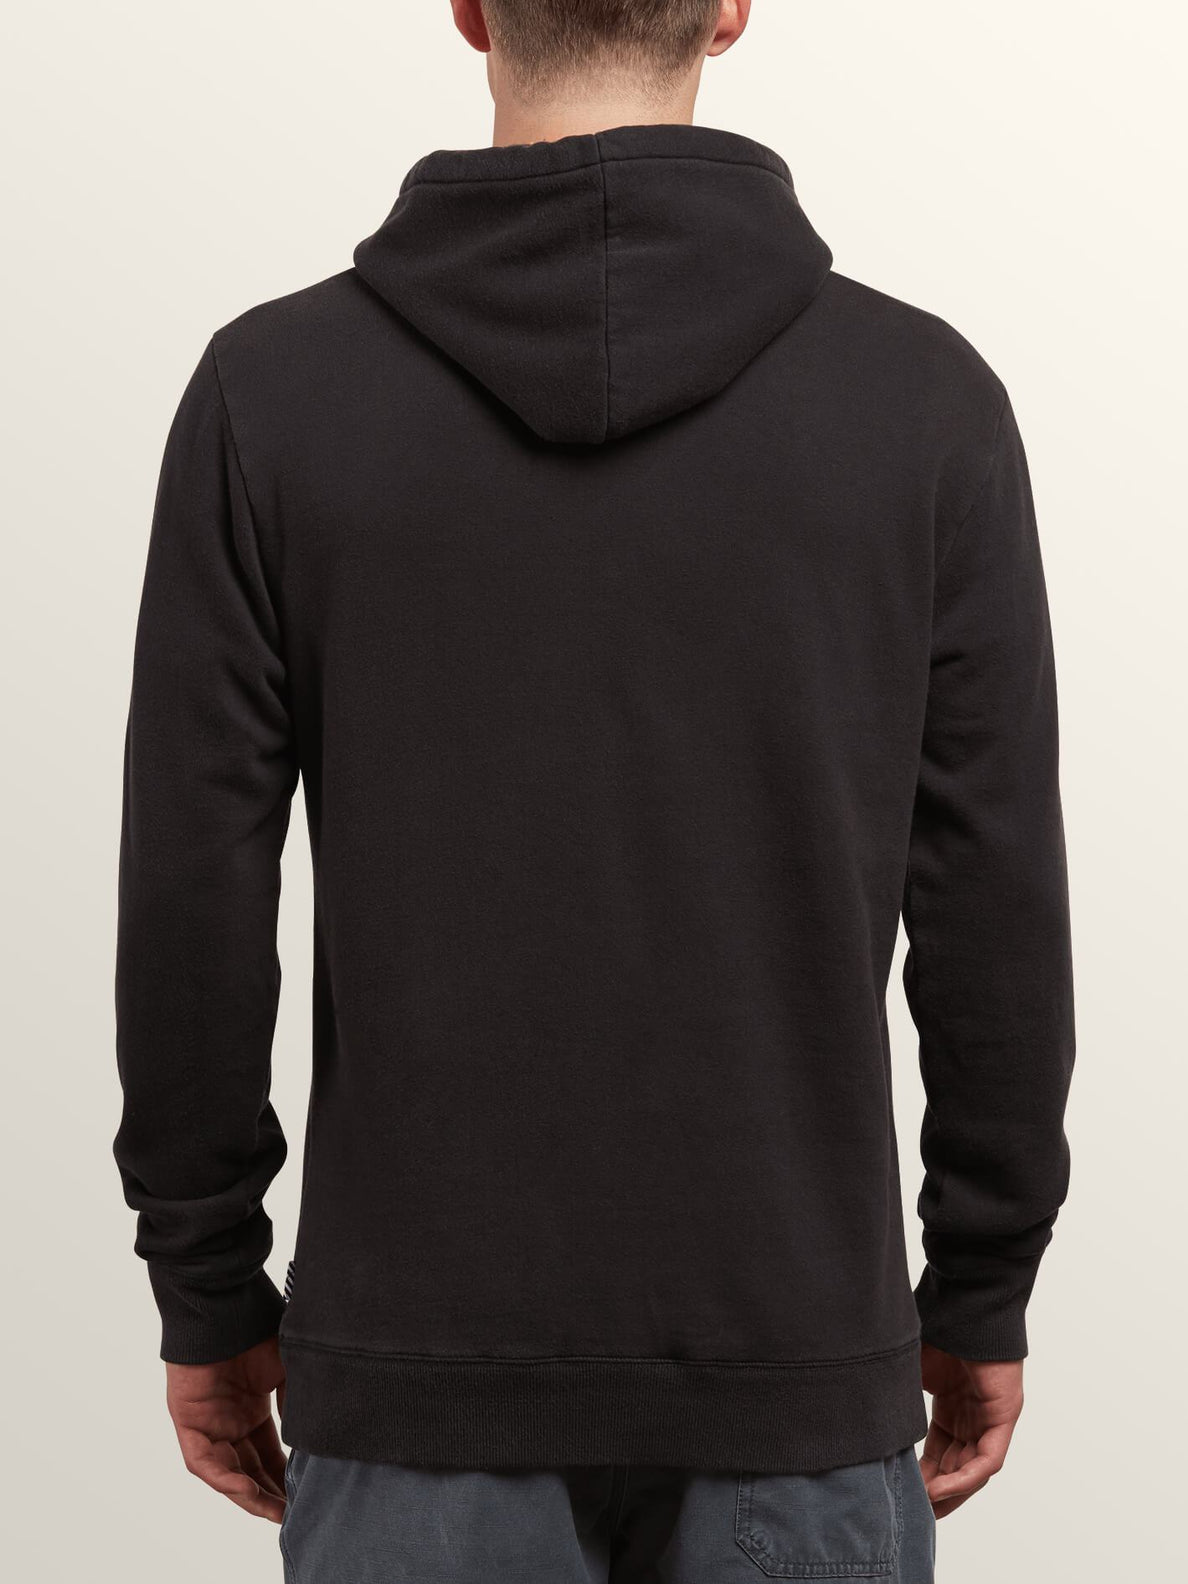 Reload Pullover Hoodie In Washed Black, Back View